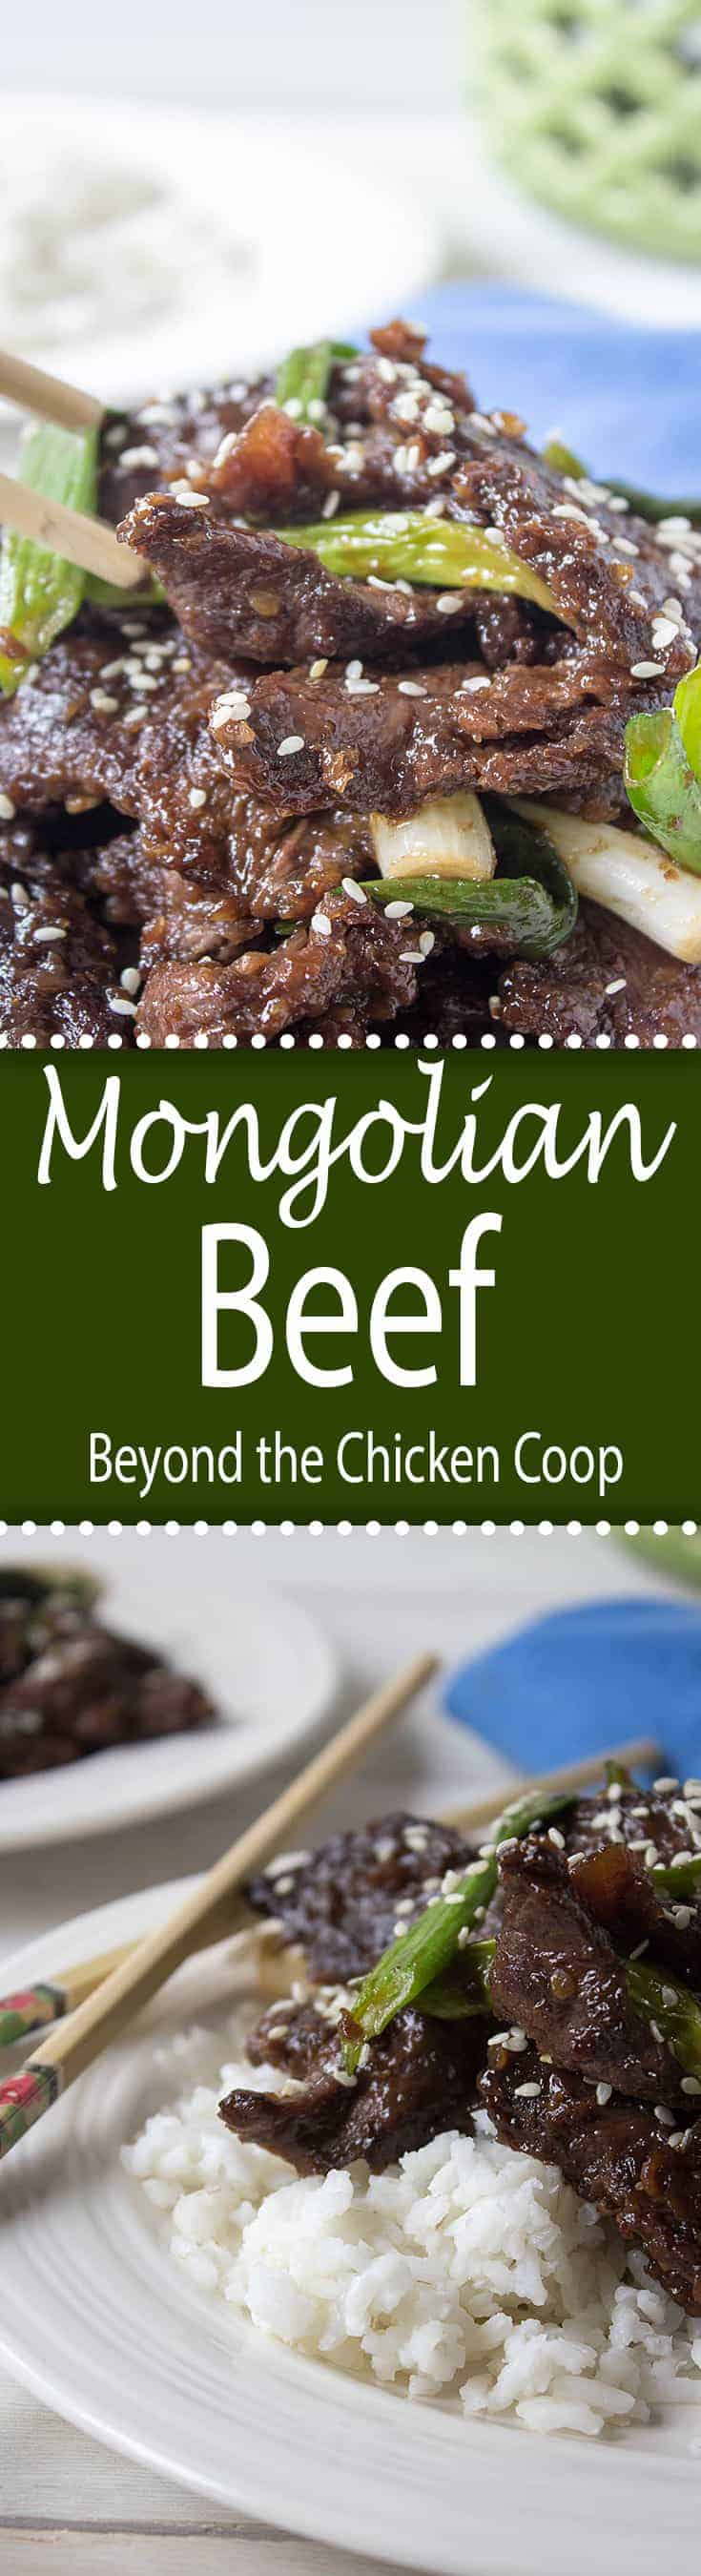 No need for take-out any longer! This Mongolian beef is a perfect make at home dinner. Made with elk meat or beef! #Chinesefood #MonolianBeef #elkmeatrecipe #wildgame